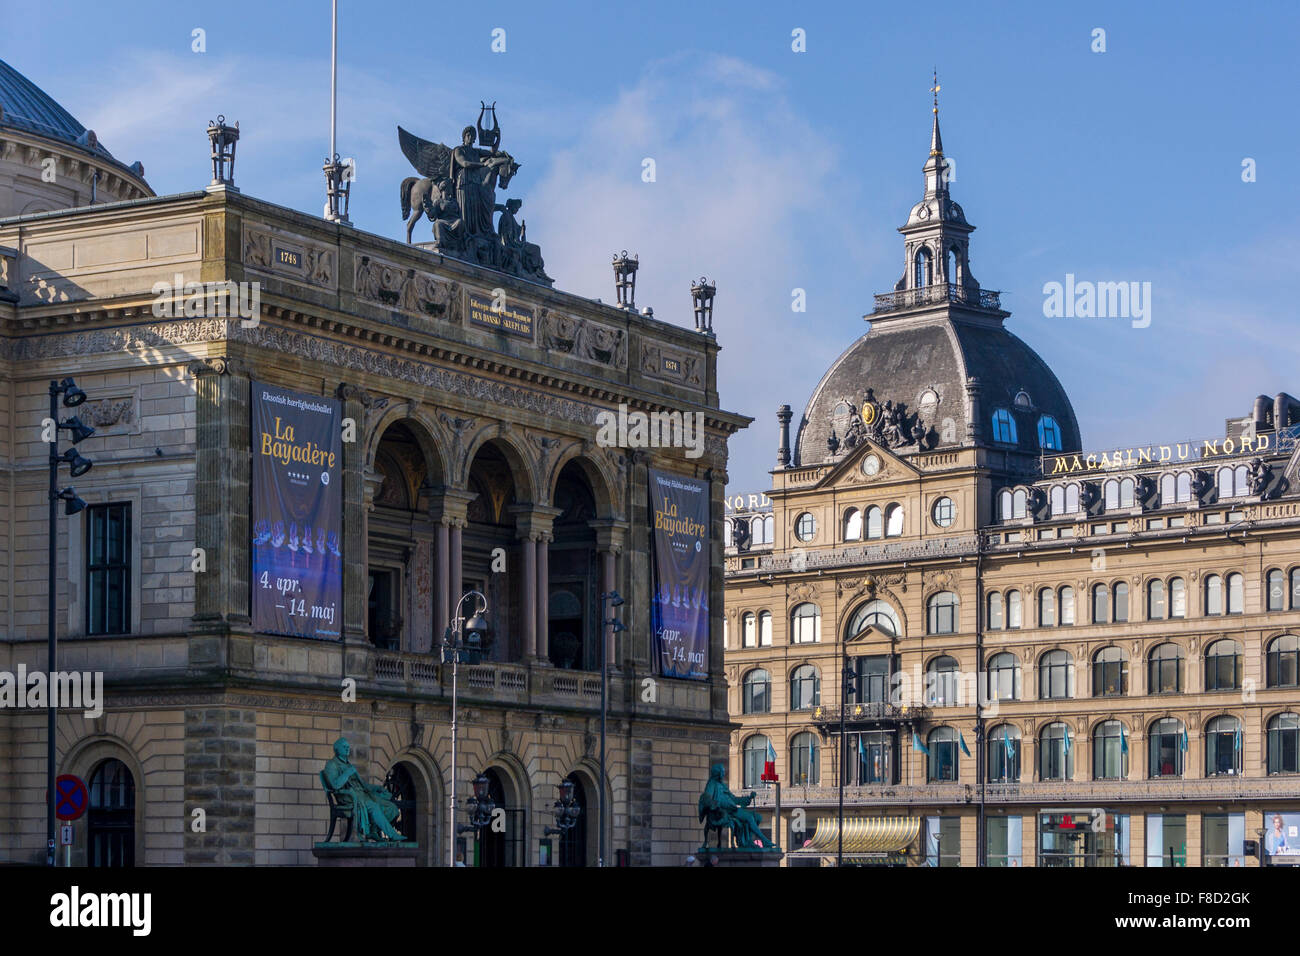 The Royal Theatre and Magasin Du Nord, Copenhagen, Denmark - Stock Image